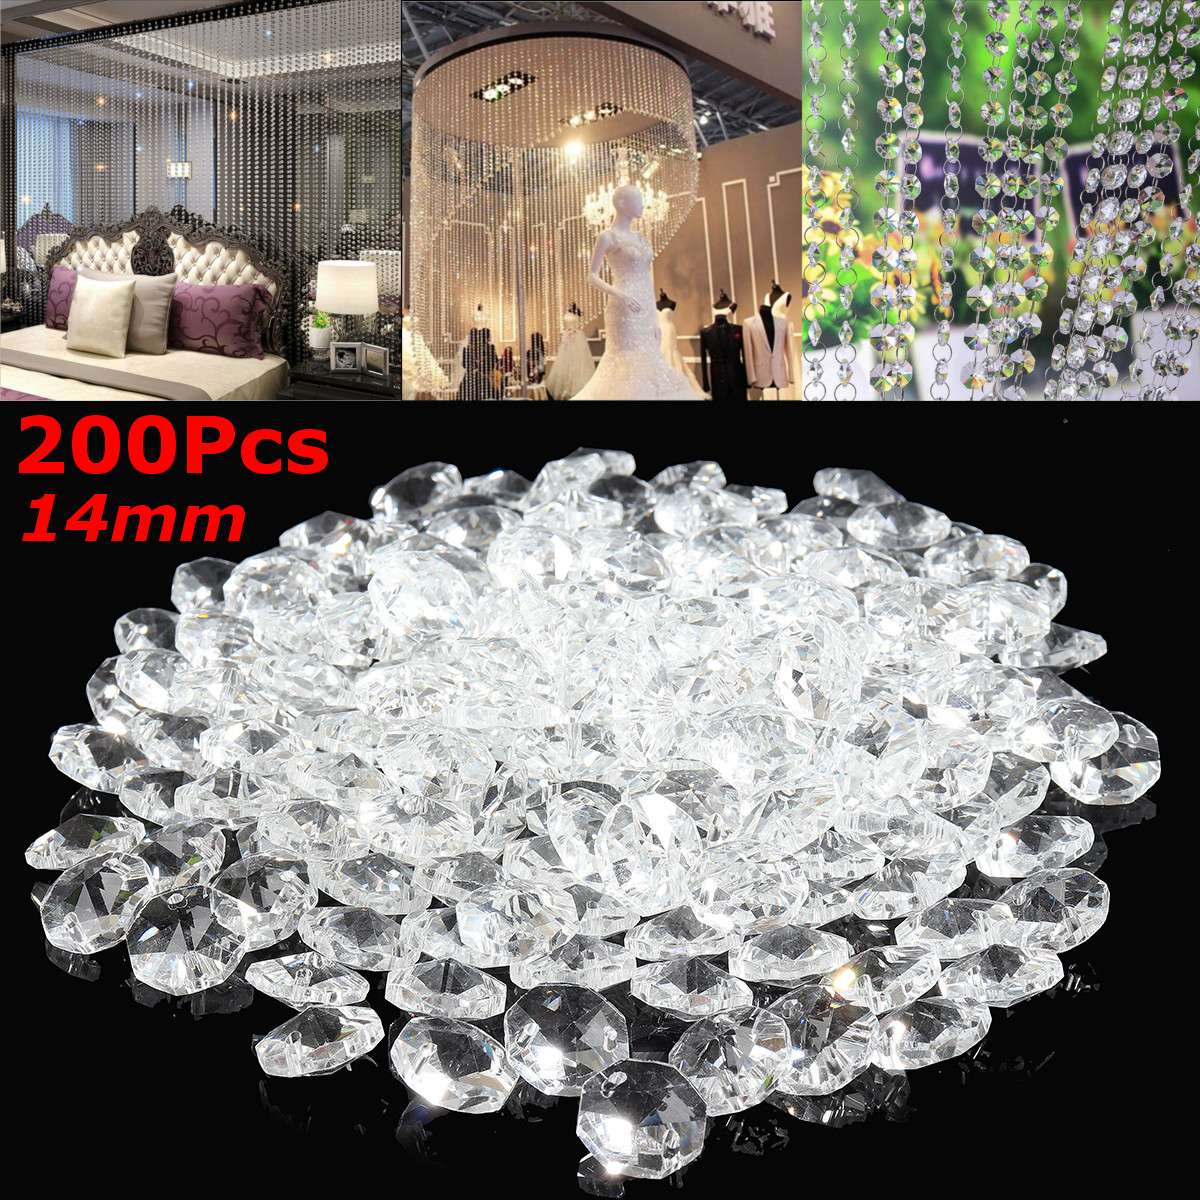 200PCS 14mm Clear Crystal Glass Prisms Octagonal Beads Pendant Hanging Prisms For DIY Light Lamp Part Decoration Home Decor